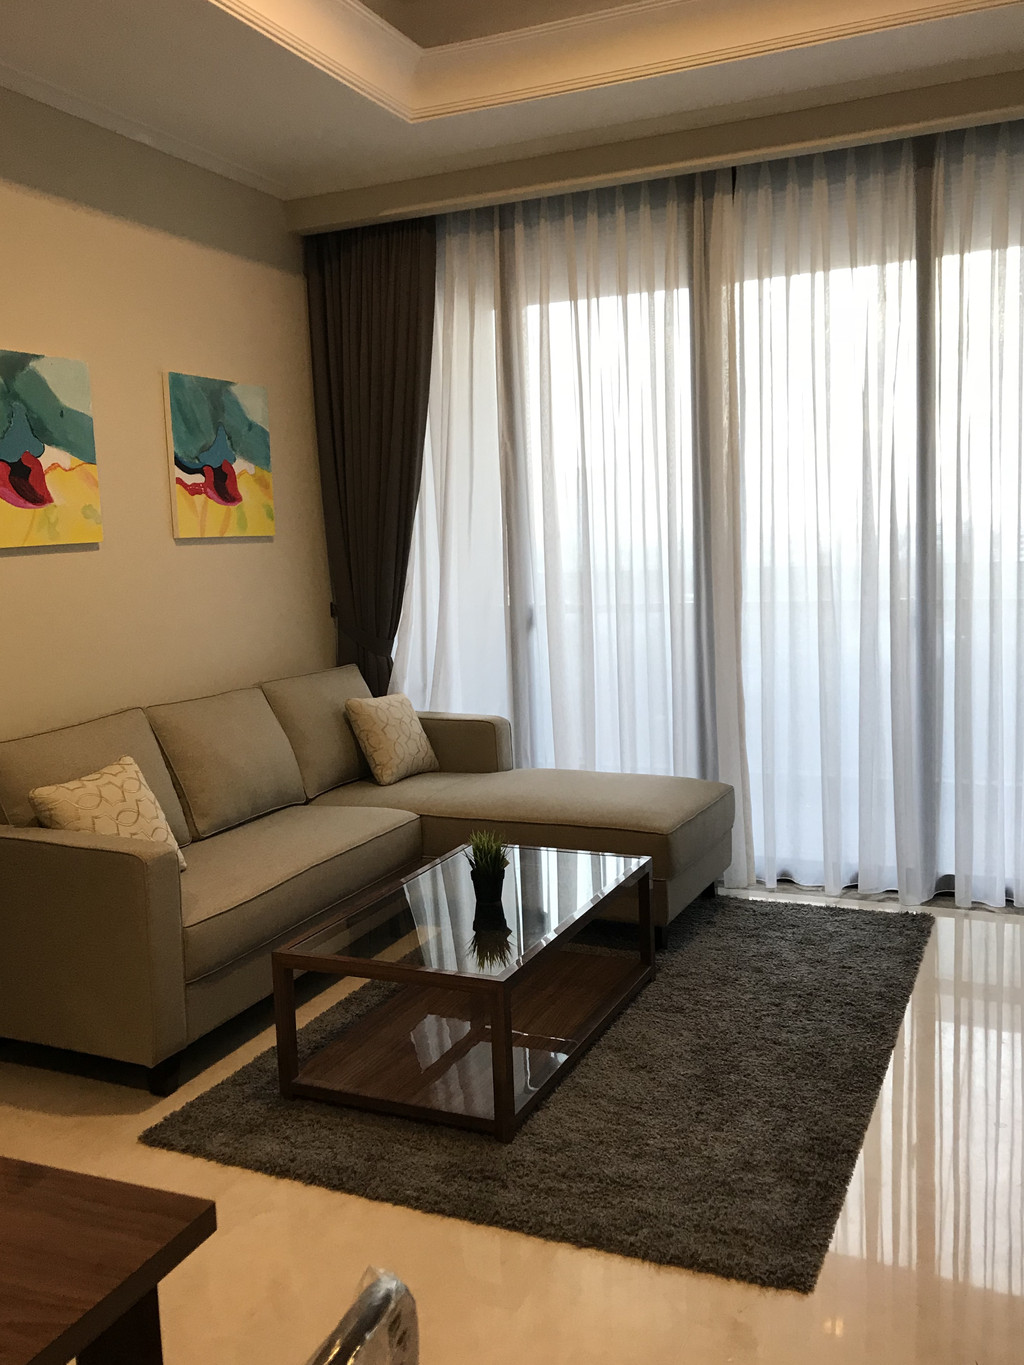 For Rent  Apartement Distric 8 Senopati with Furnished